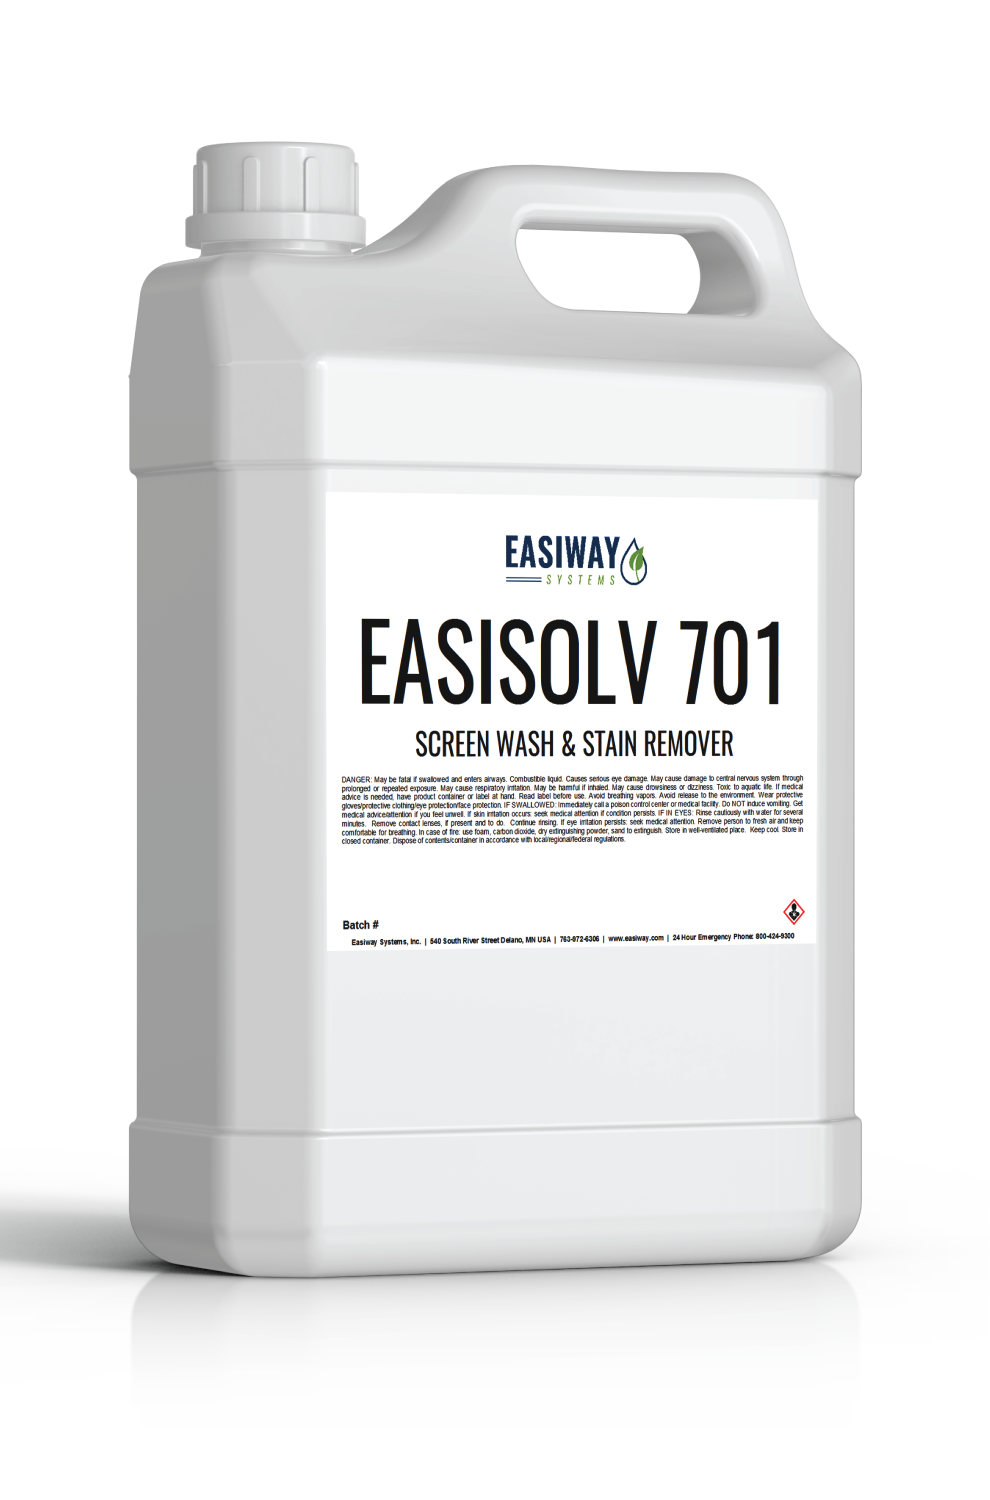 Easiway 701 - Screen Wash & Stain Remover - 1 Gallon